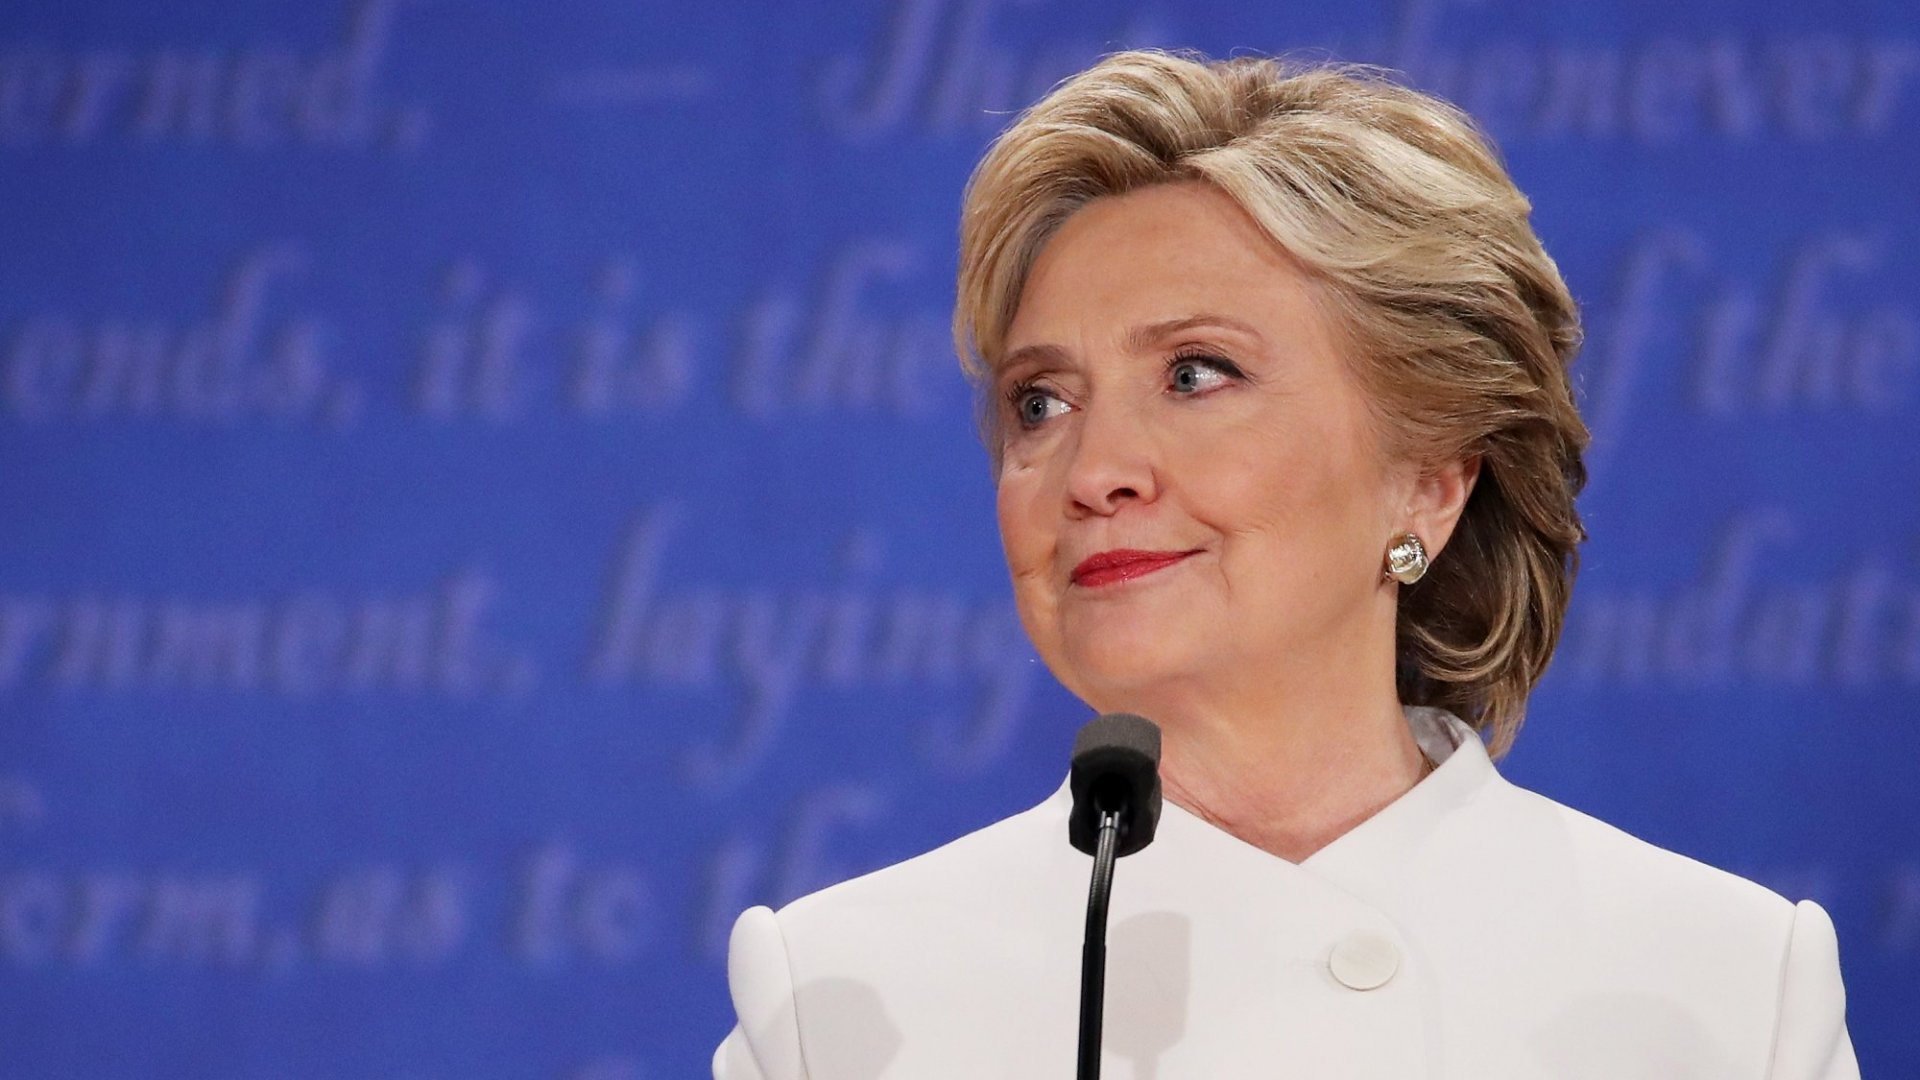 Hillary Clinton's Loss Has Discouraged Women in Business, Says New Study